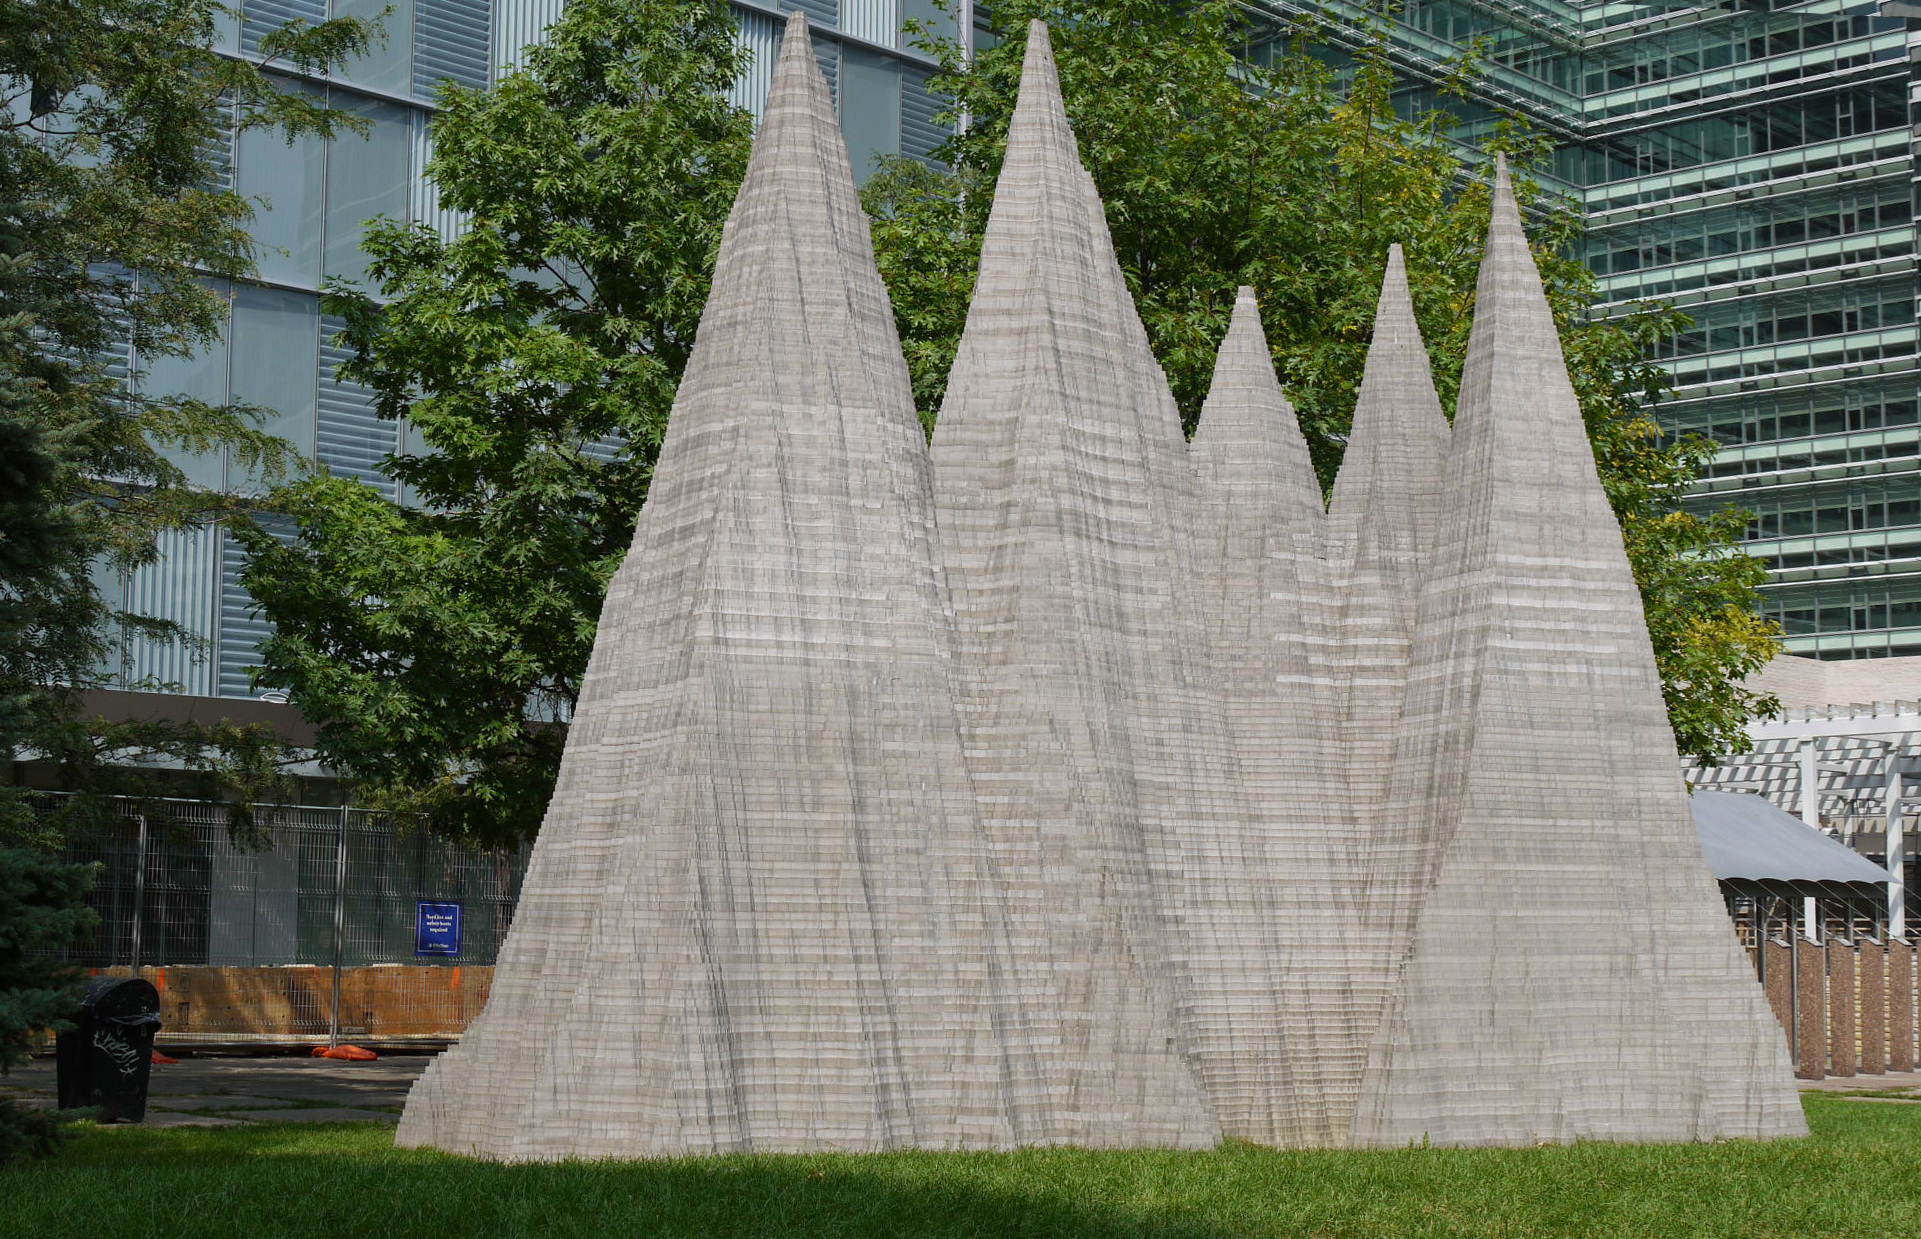 Mountain   by Anish Kapoor, Simcoe Park, Toronto, 1995. Photo courtesy of Public Art Management